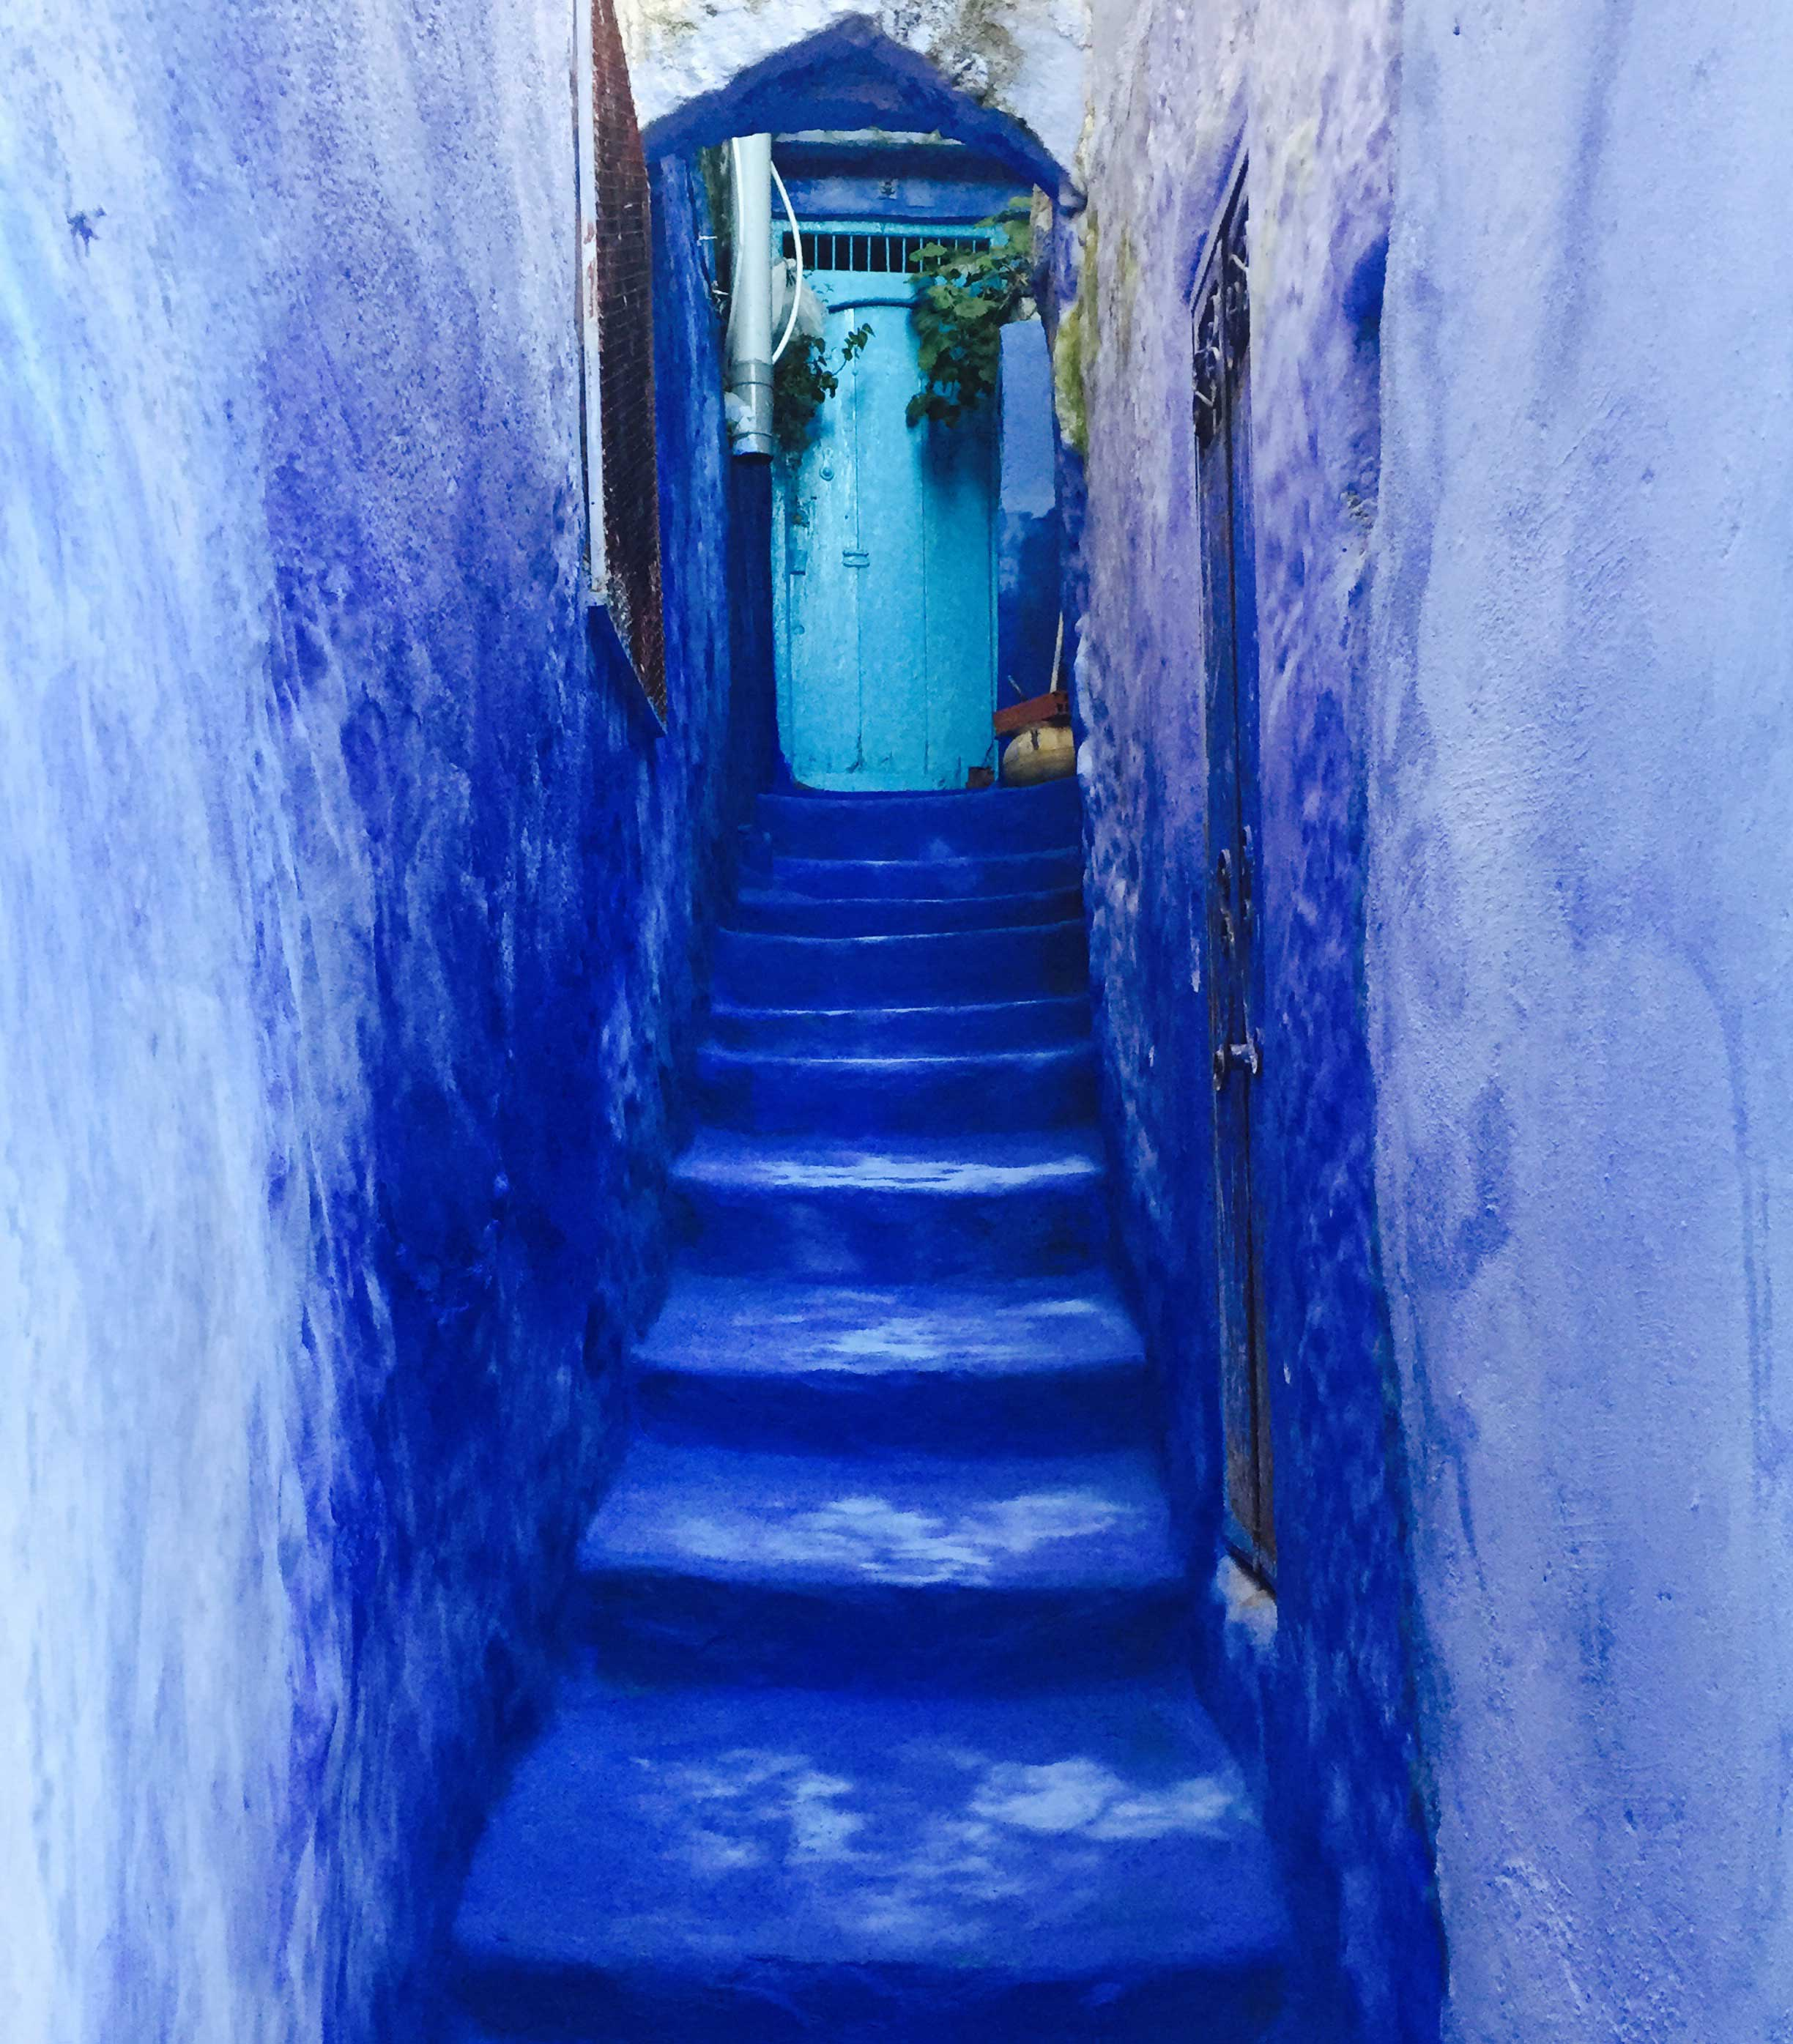 Chefchaouen Morocco  City new picture : Chefchaouen: Morocco's Blue City in the Rif Mountains